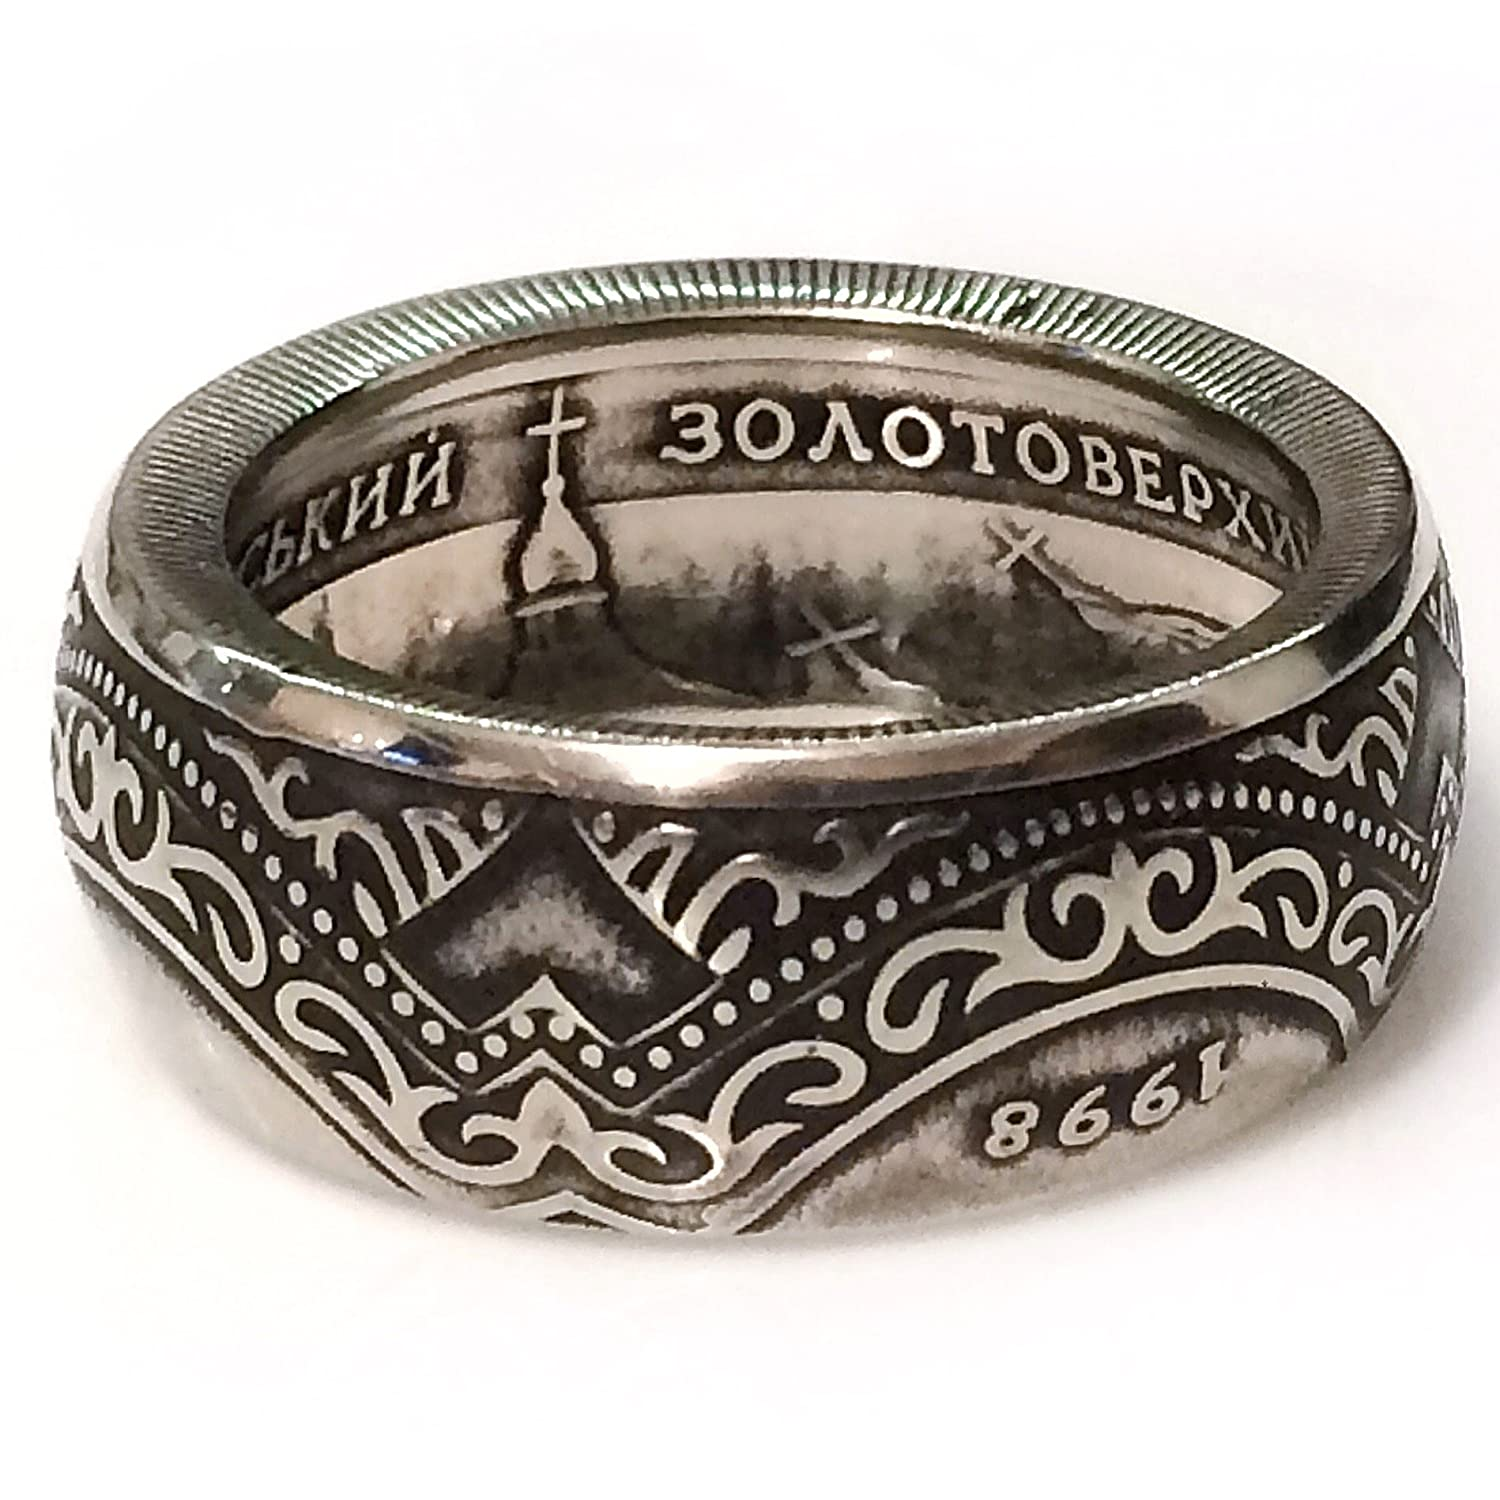 Ukrainian Coin Ring 5 Hryvnia - Great Unique Souvenir from Ukraine - Men's size - Rings from Coins